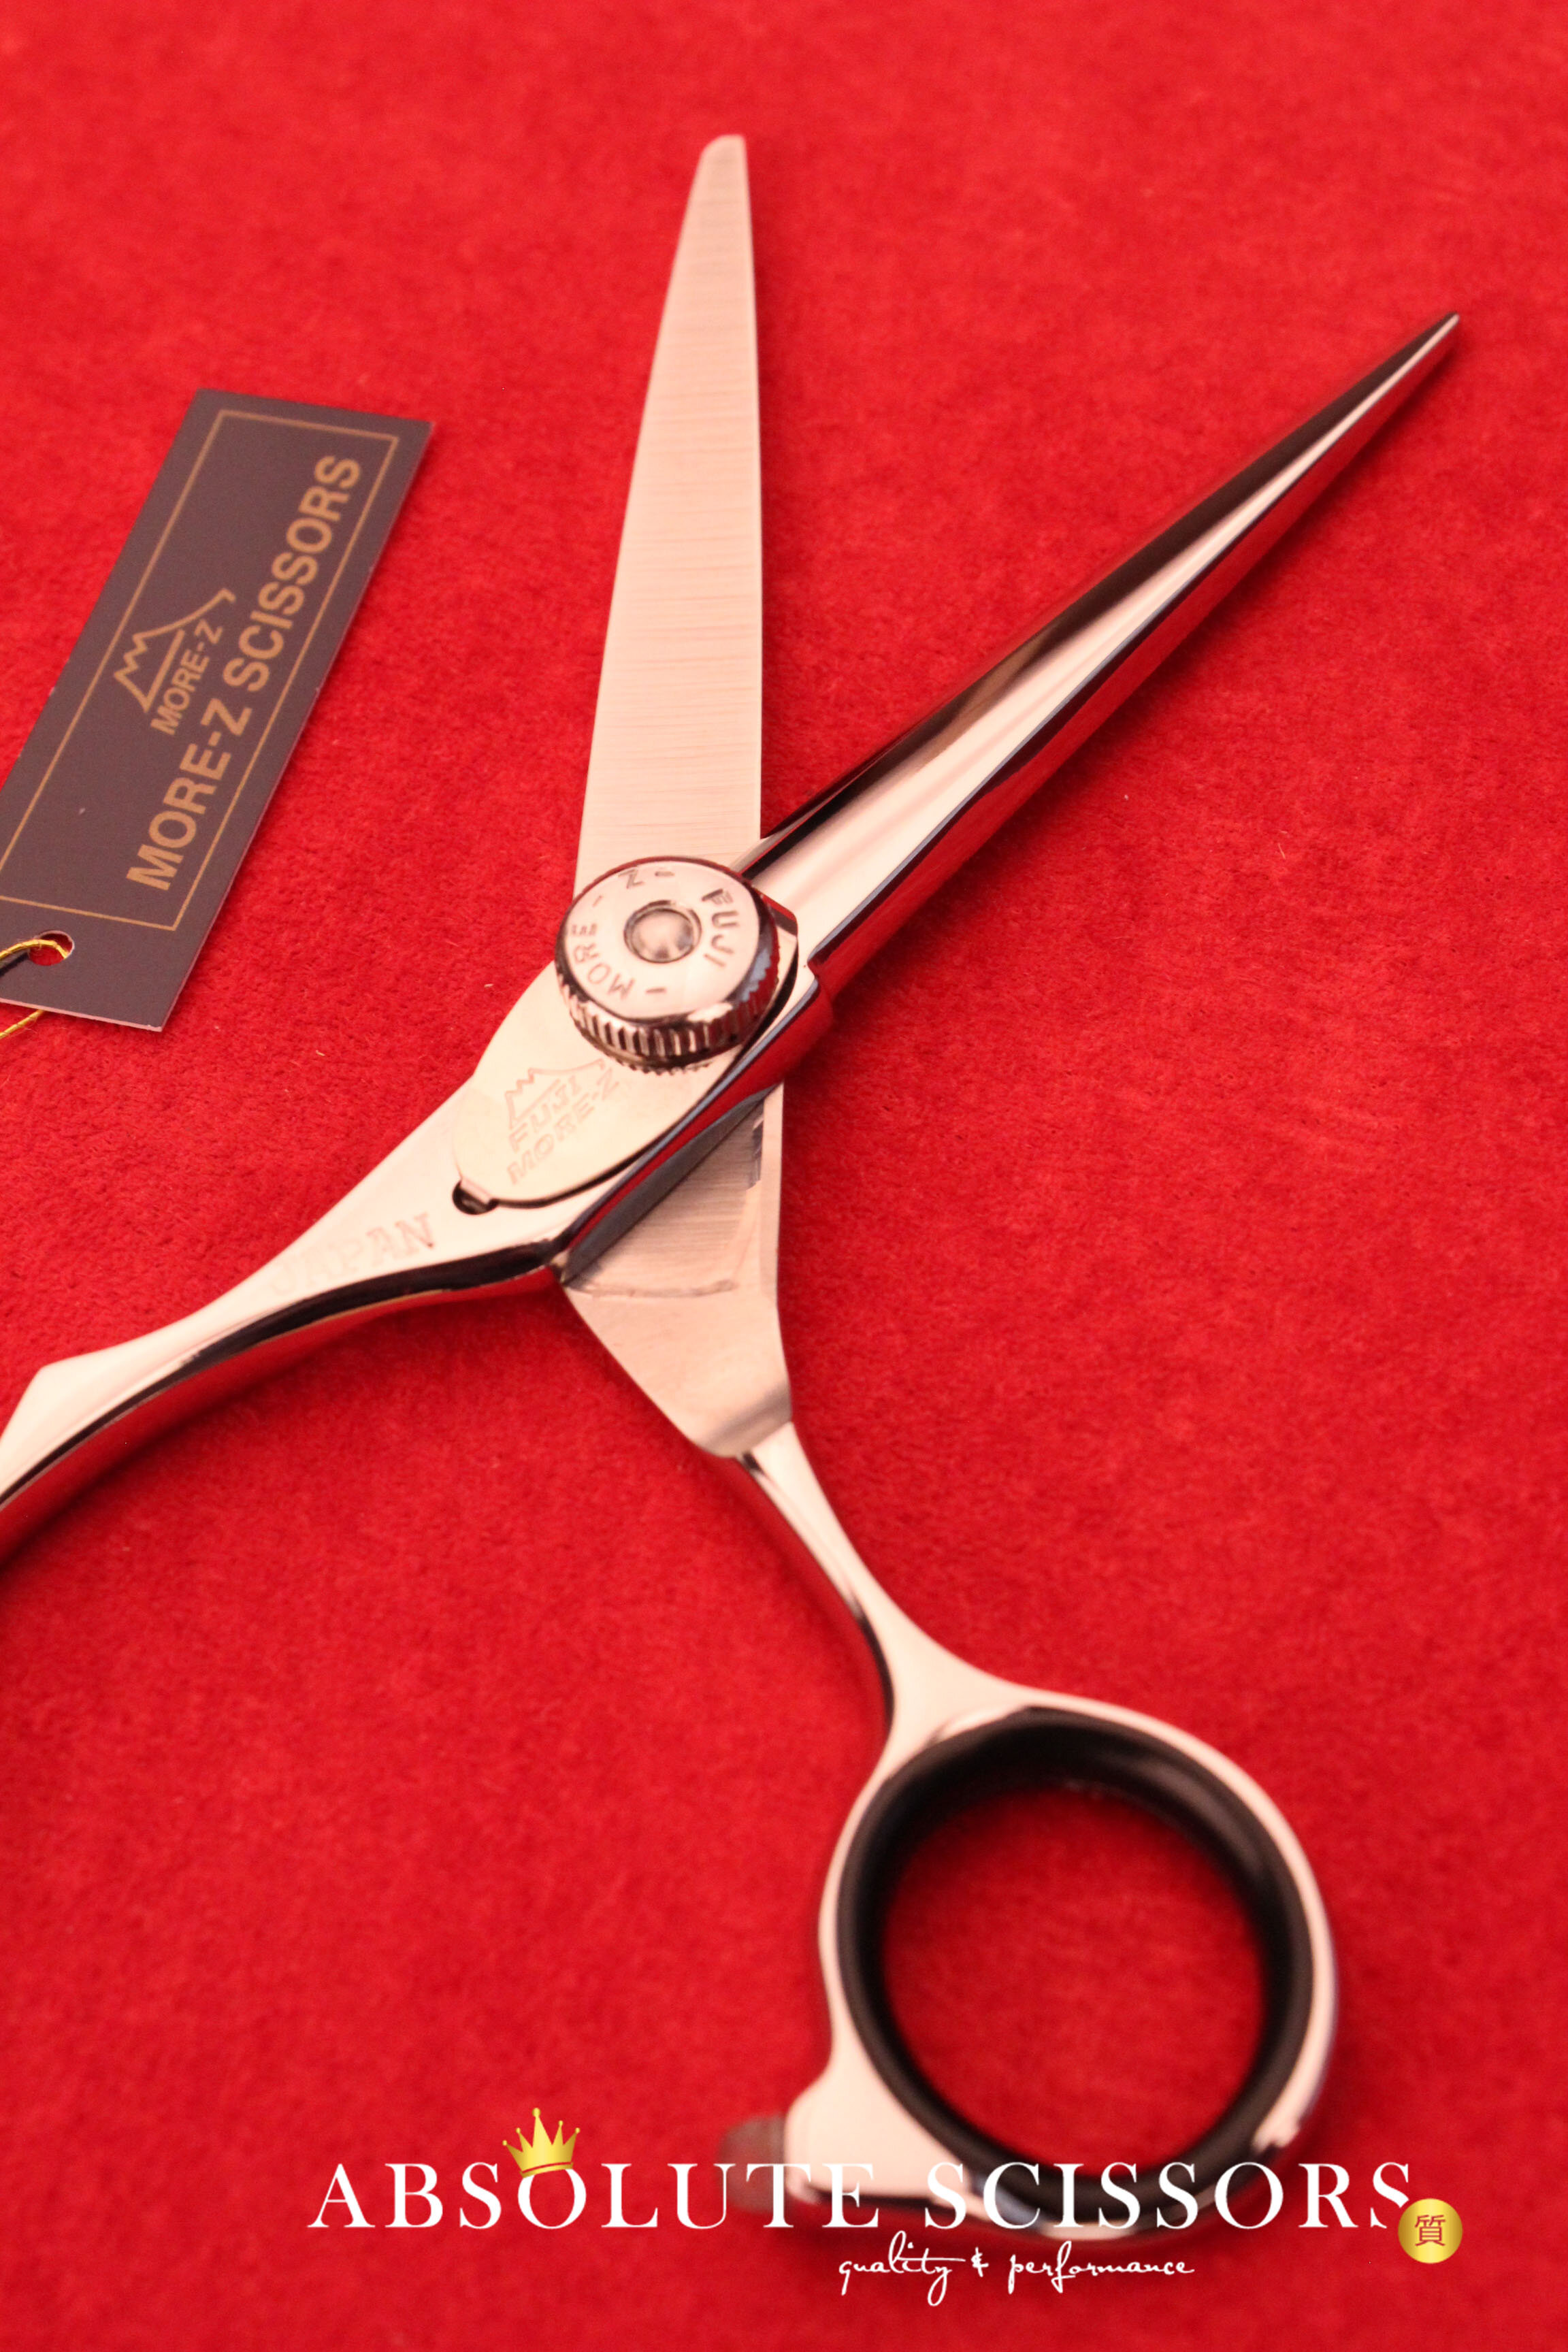 SF55 3600 Fuji hair scissors shears 5.5 inches special alloy